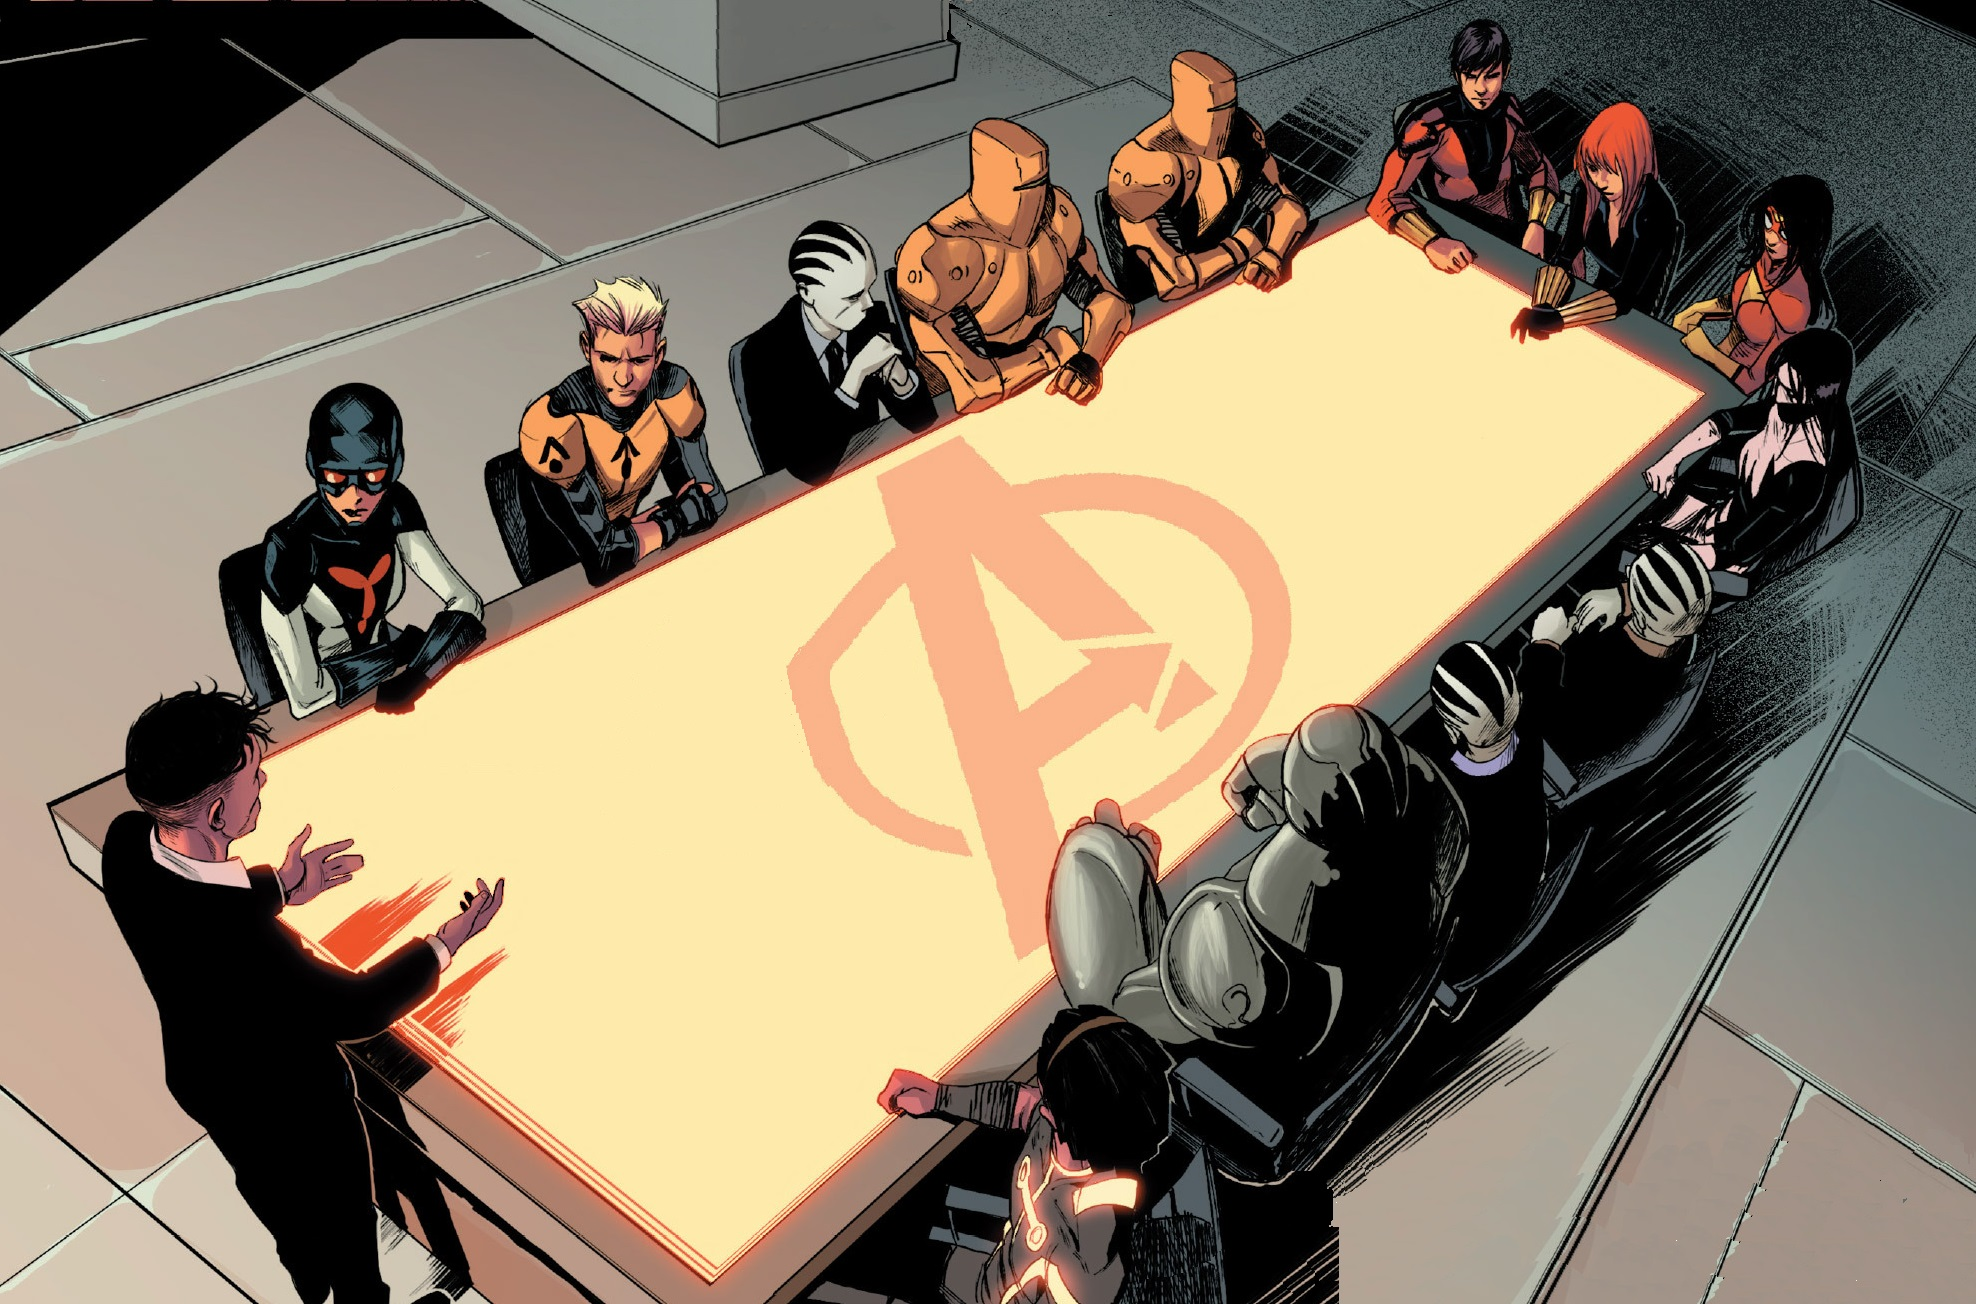 New Avengers (A.I.M.) (Earth-616)/Gallery